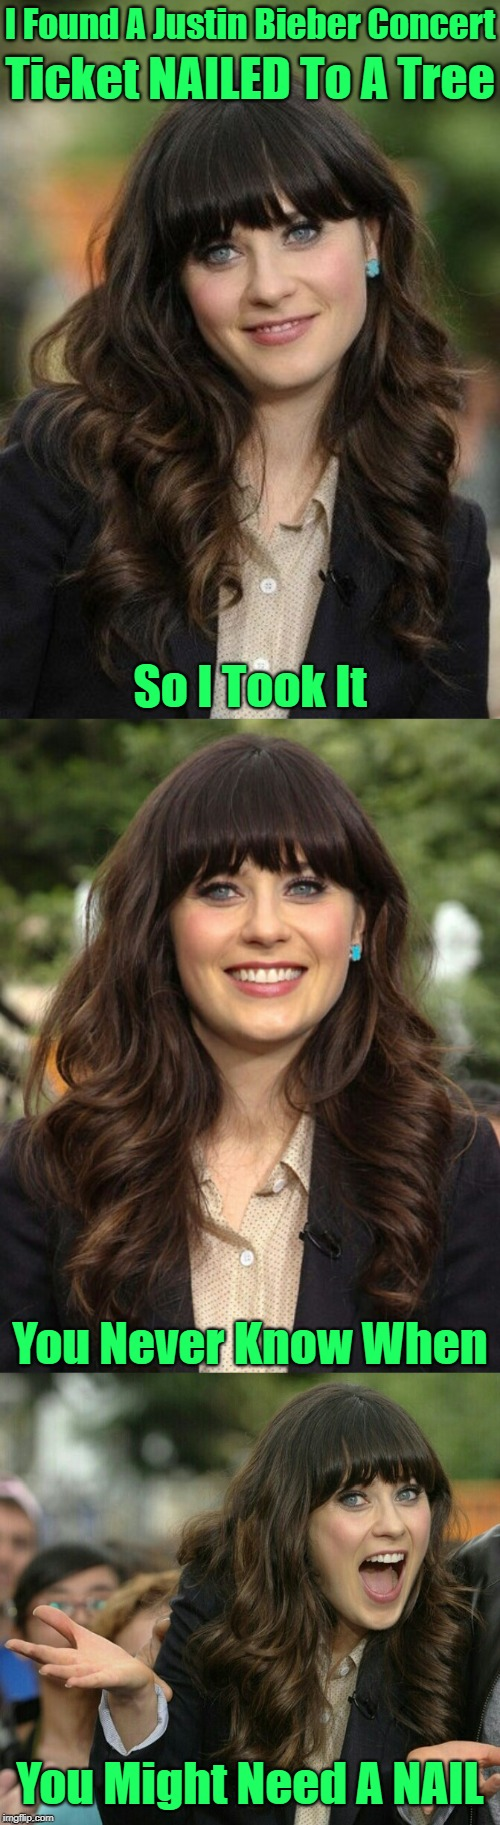 It Comes In Handy When You Have To Pick A Lock! | I Found A Justin Bieber Concert You Never Know When So I Took It Ticket NAILED To A Tree You Might Need A NAIL | image tagged in zooey deschanel joke template,memes,jbmemegeek,justin bieber,zooey deschanel | made w/ Imgflip meme maker